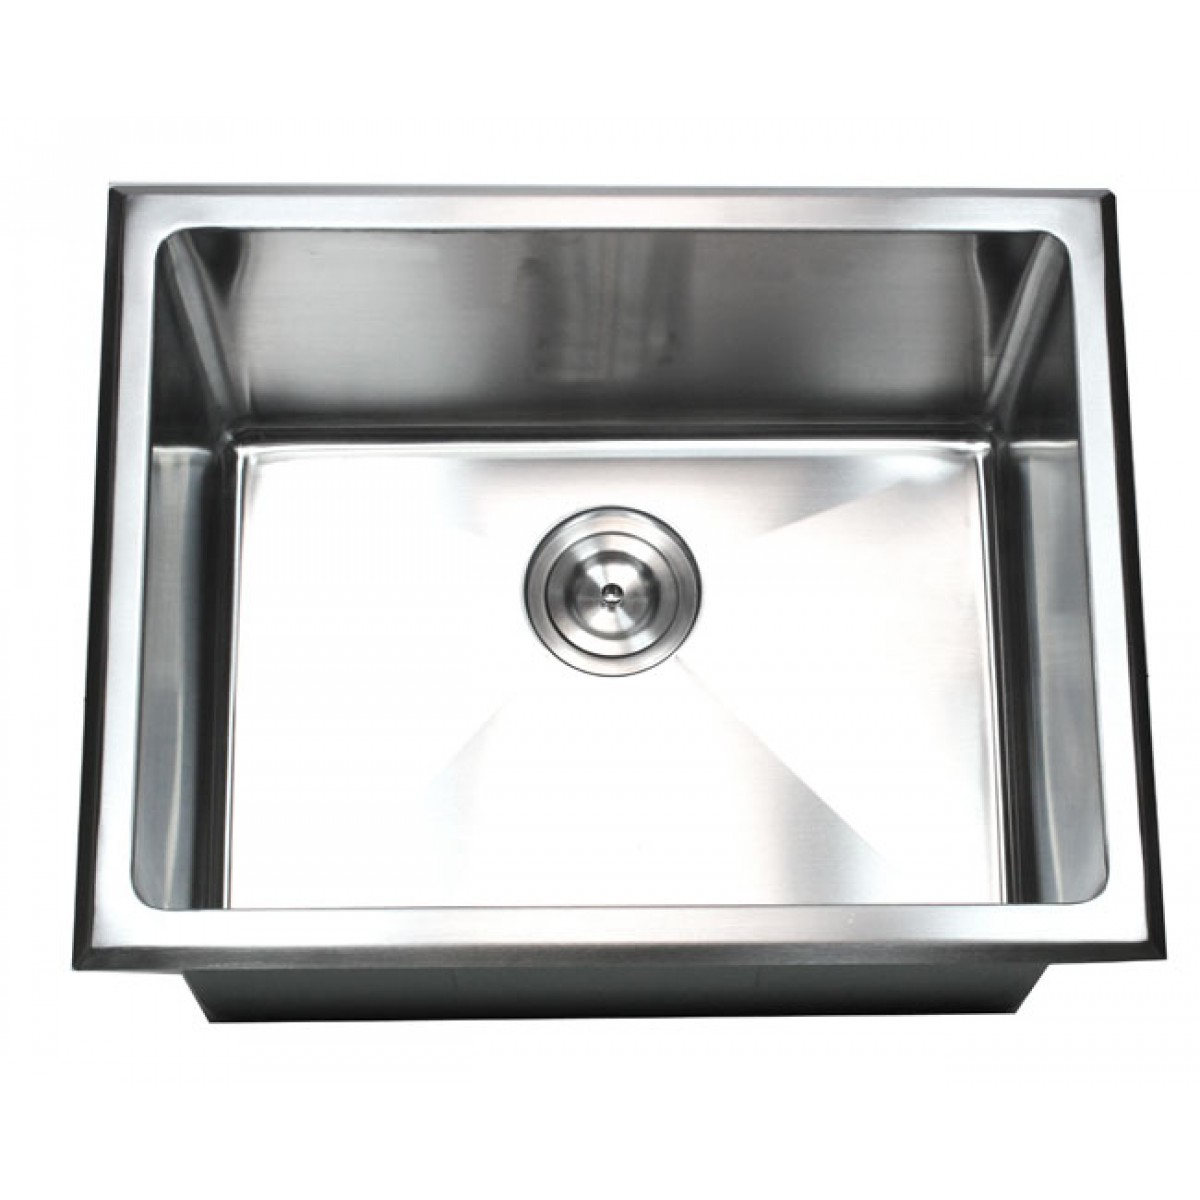 23 inch drop in stainless steel single bowl kitchen utility laundry sink 15mm radius design